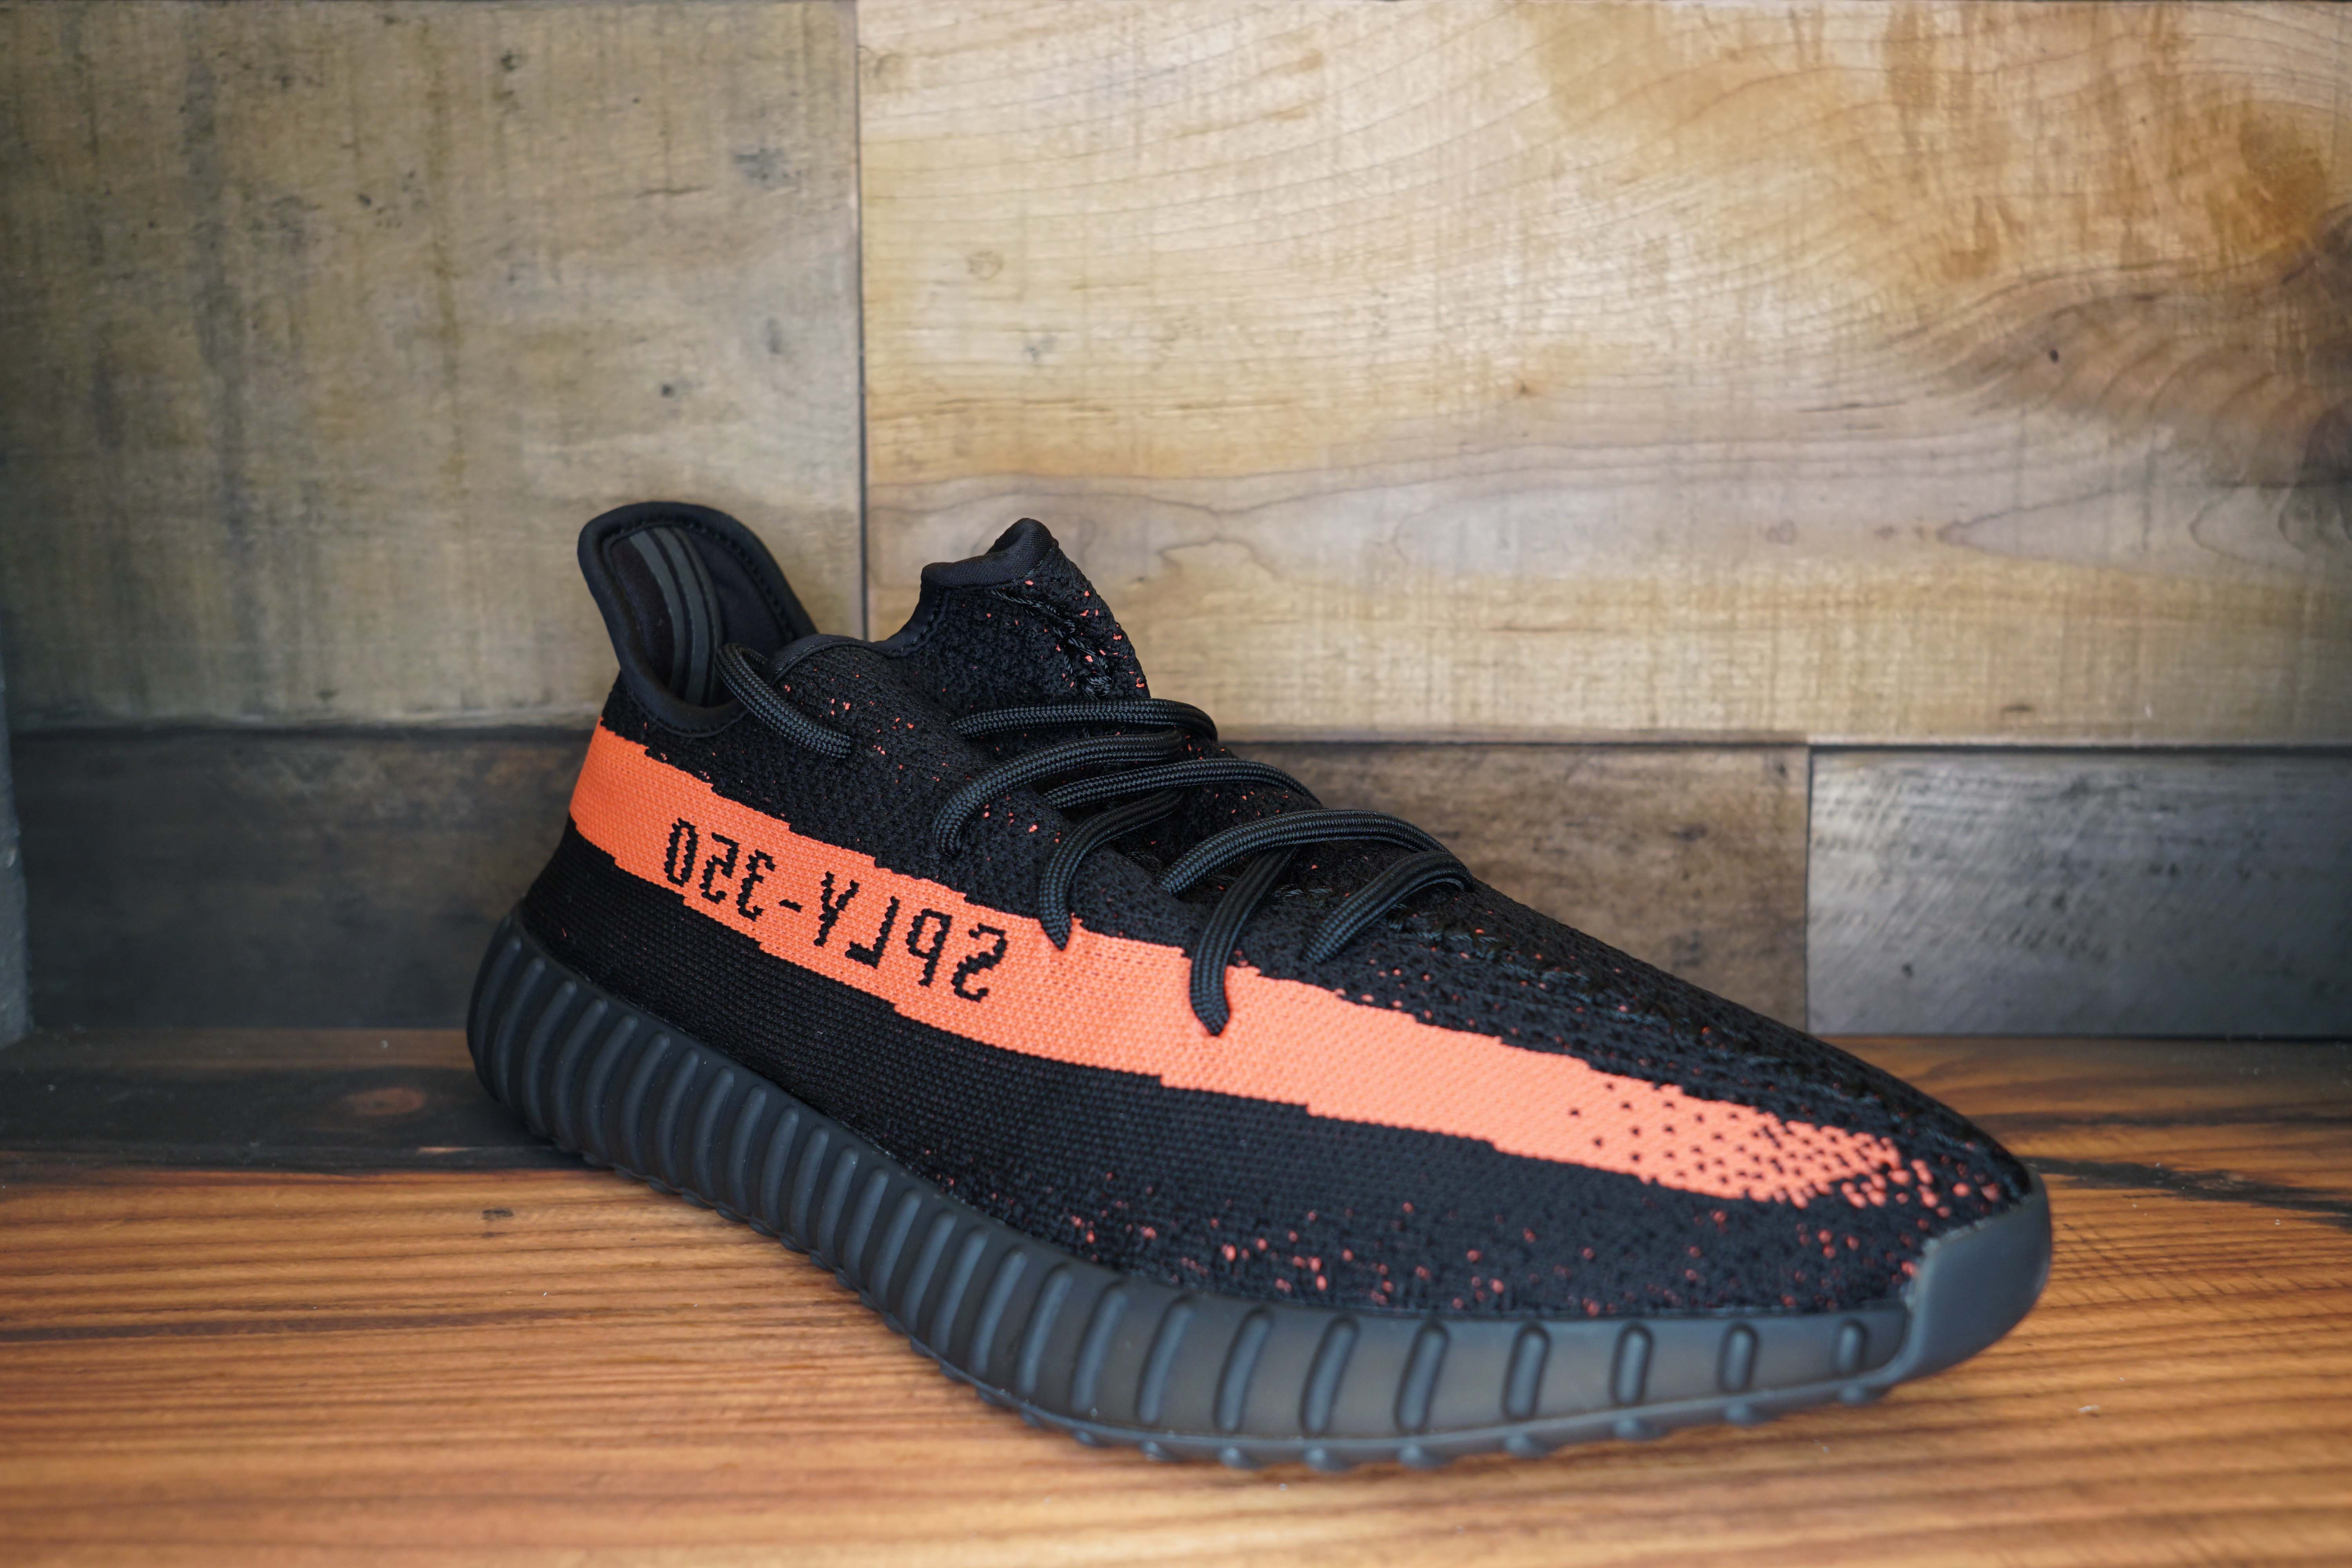 Replica Yeezy Boost 350 V2 Fake Yeezy Boost 350 For Sale, Replica